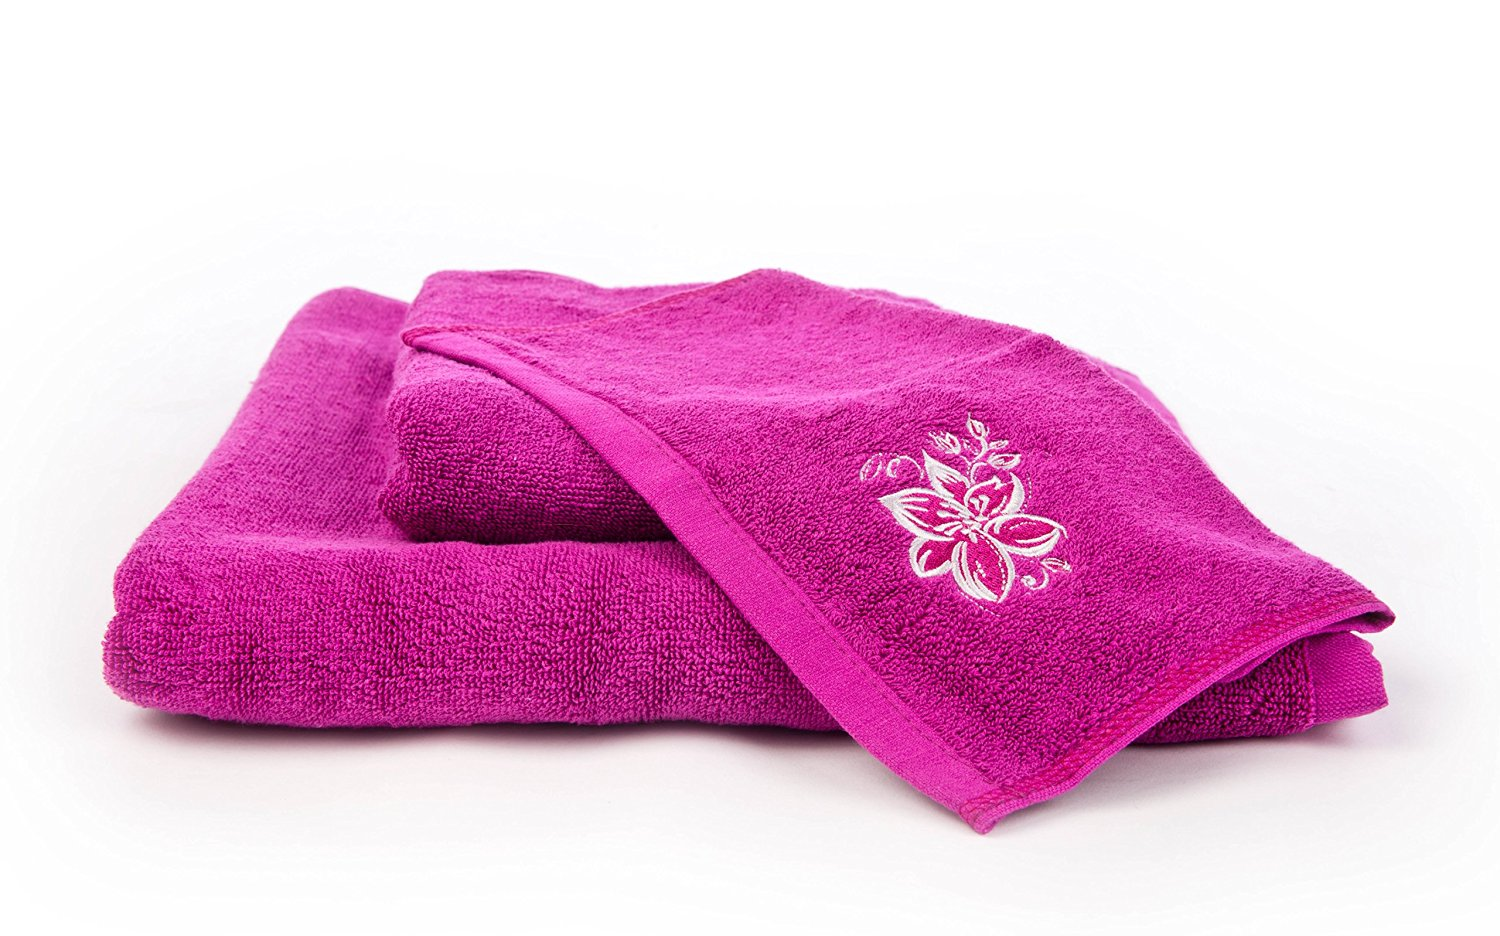 3 Piece Embroidered Cotton Towel Bale set 500GSM Cotton with Bath Hand and Face Towel (Fushia Floral)